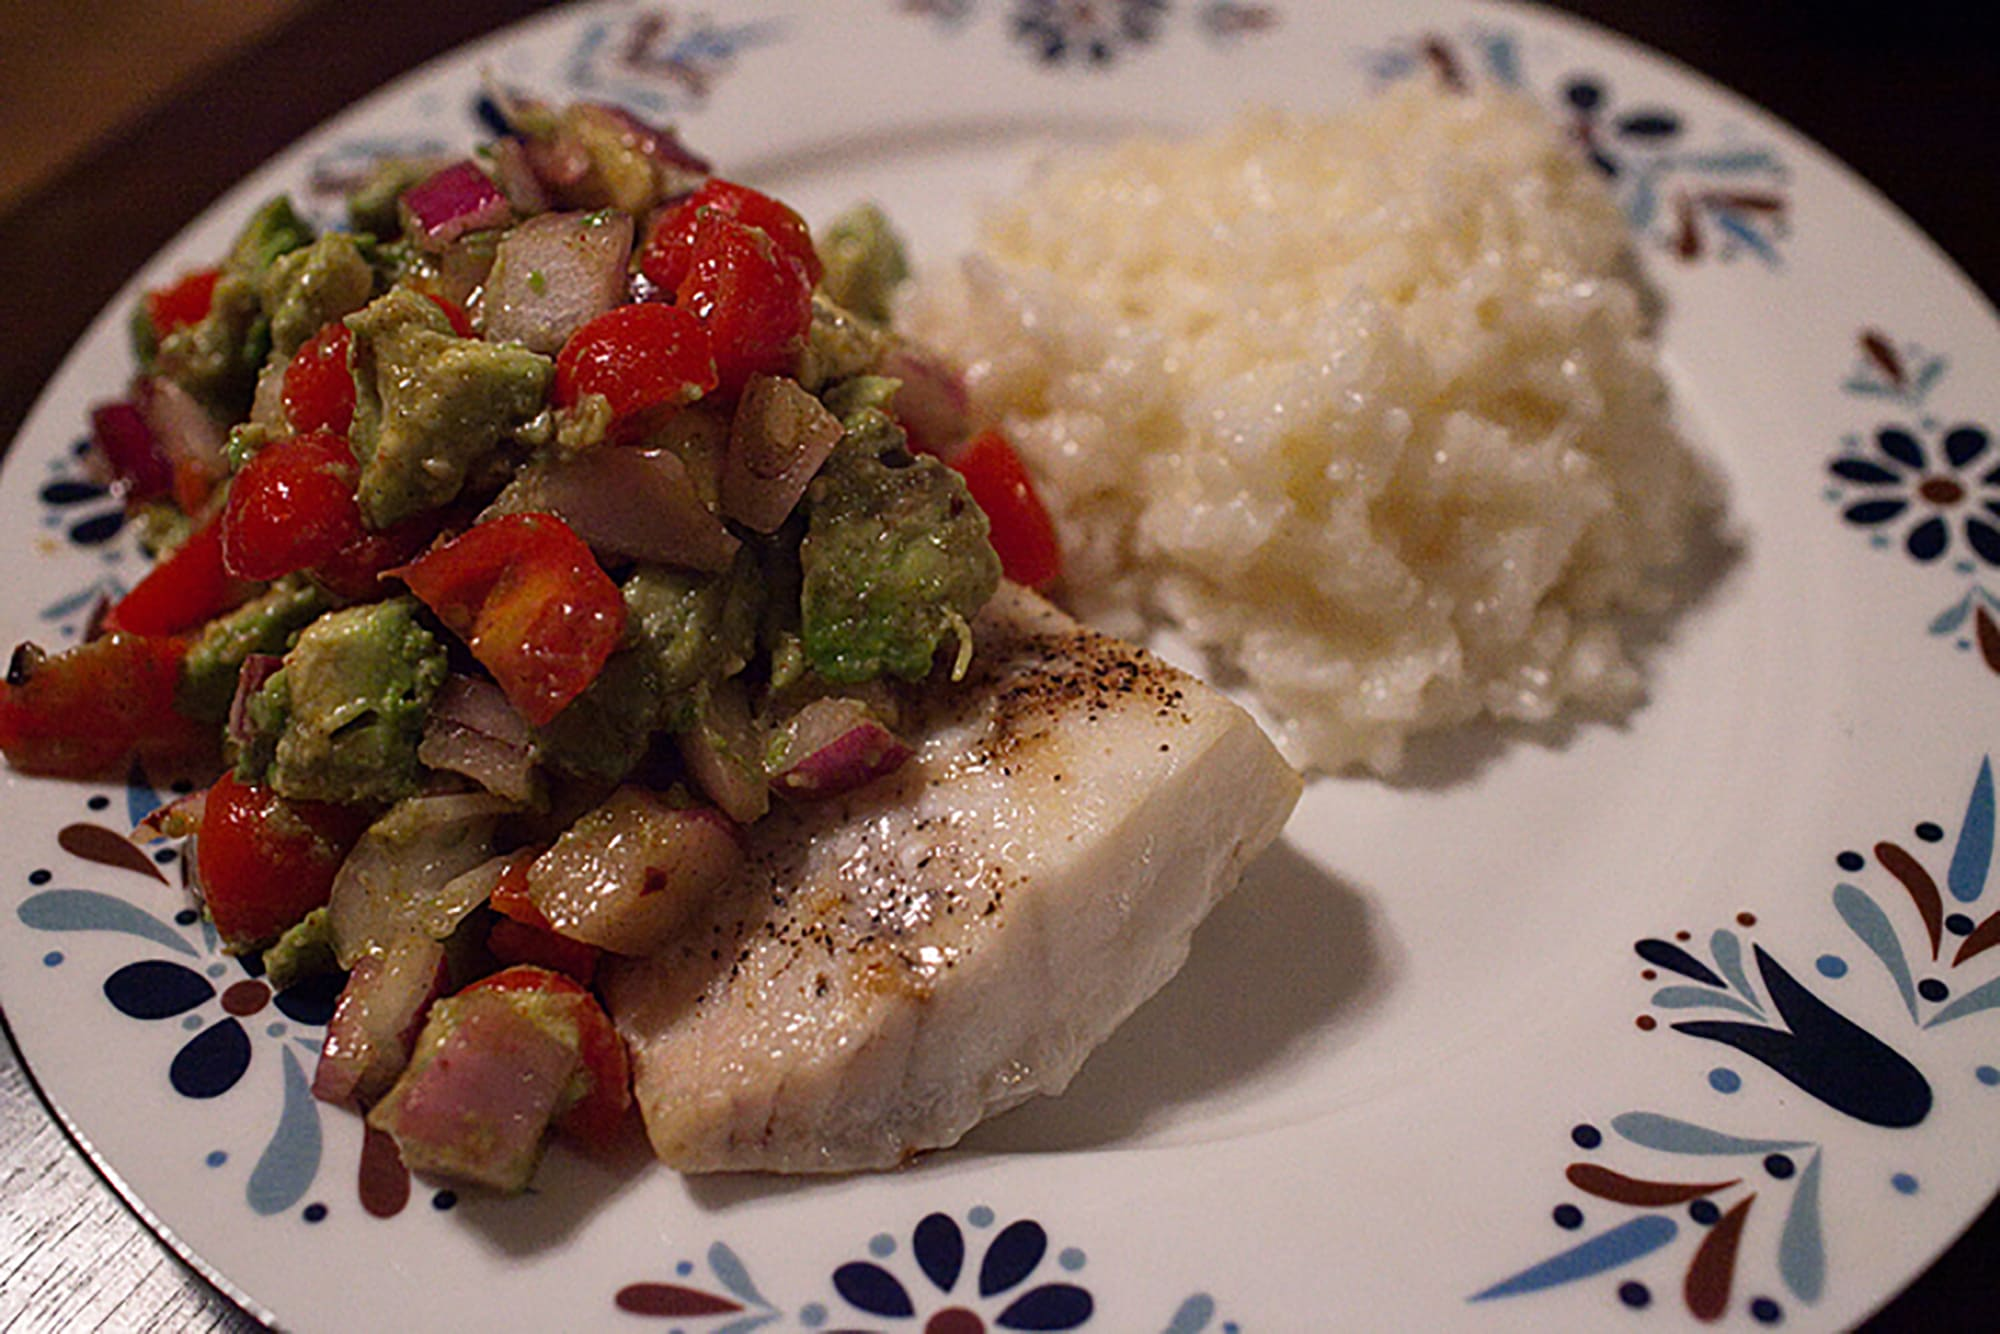 Cod with avocado salsa.